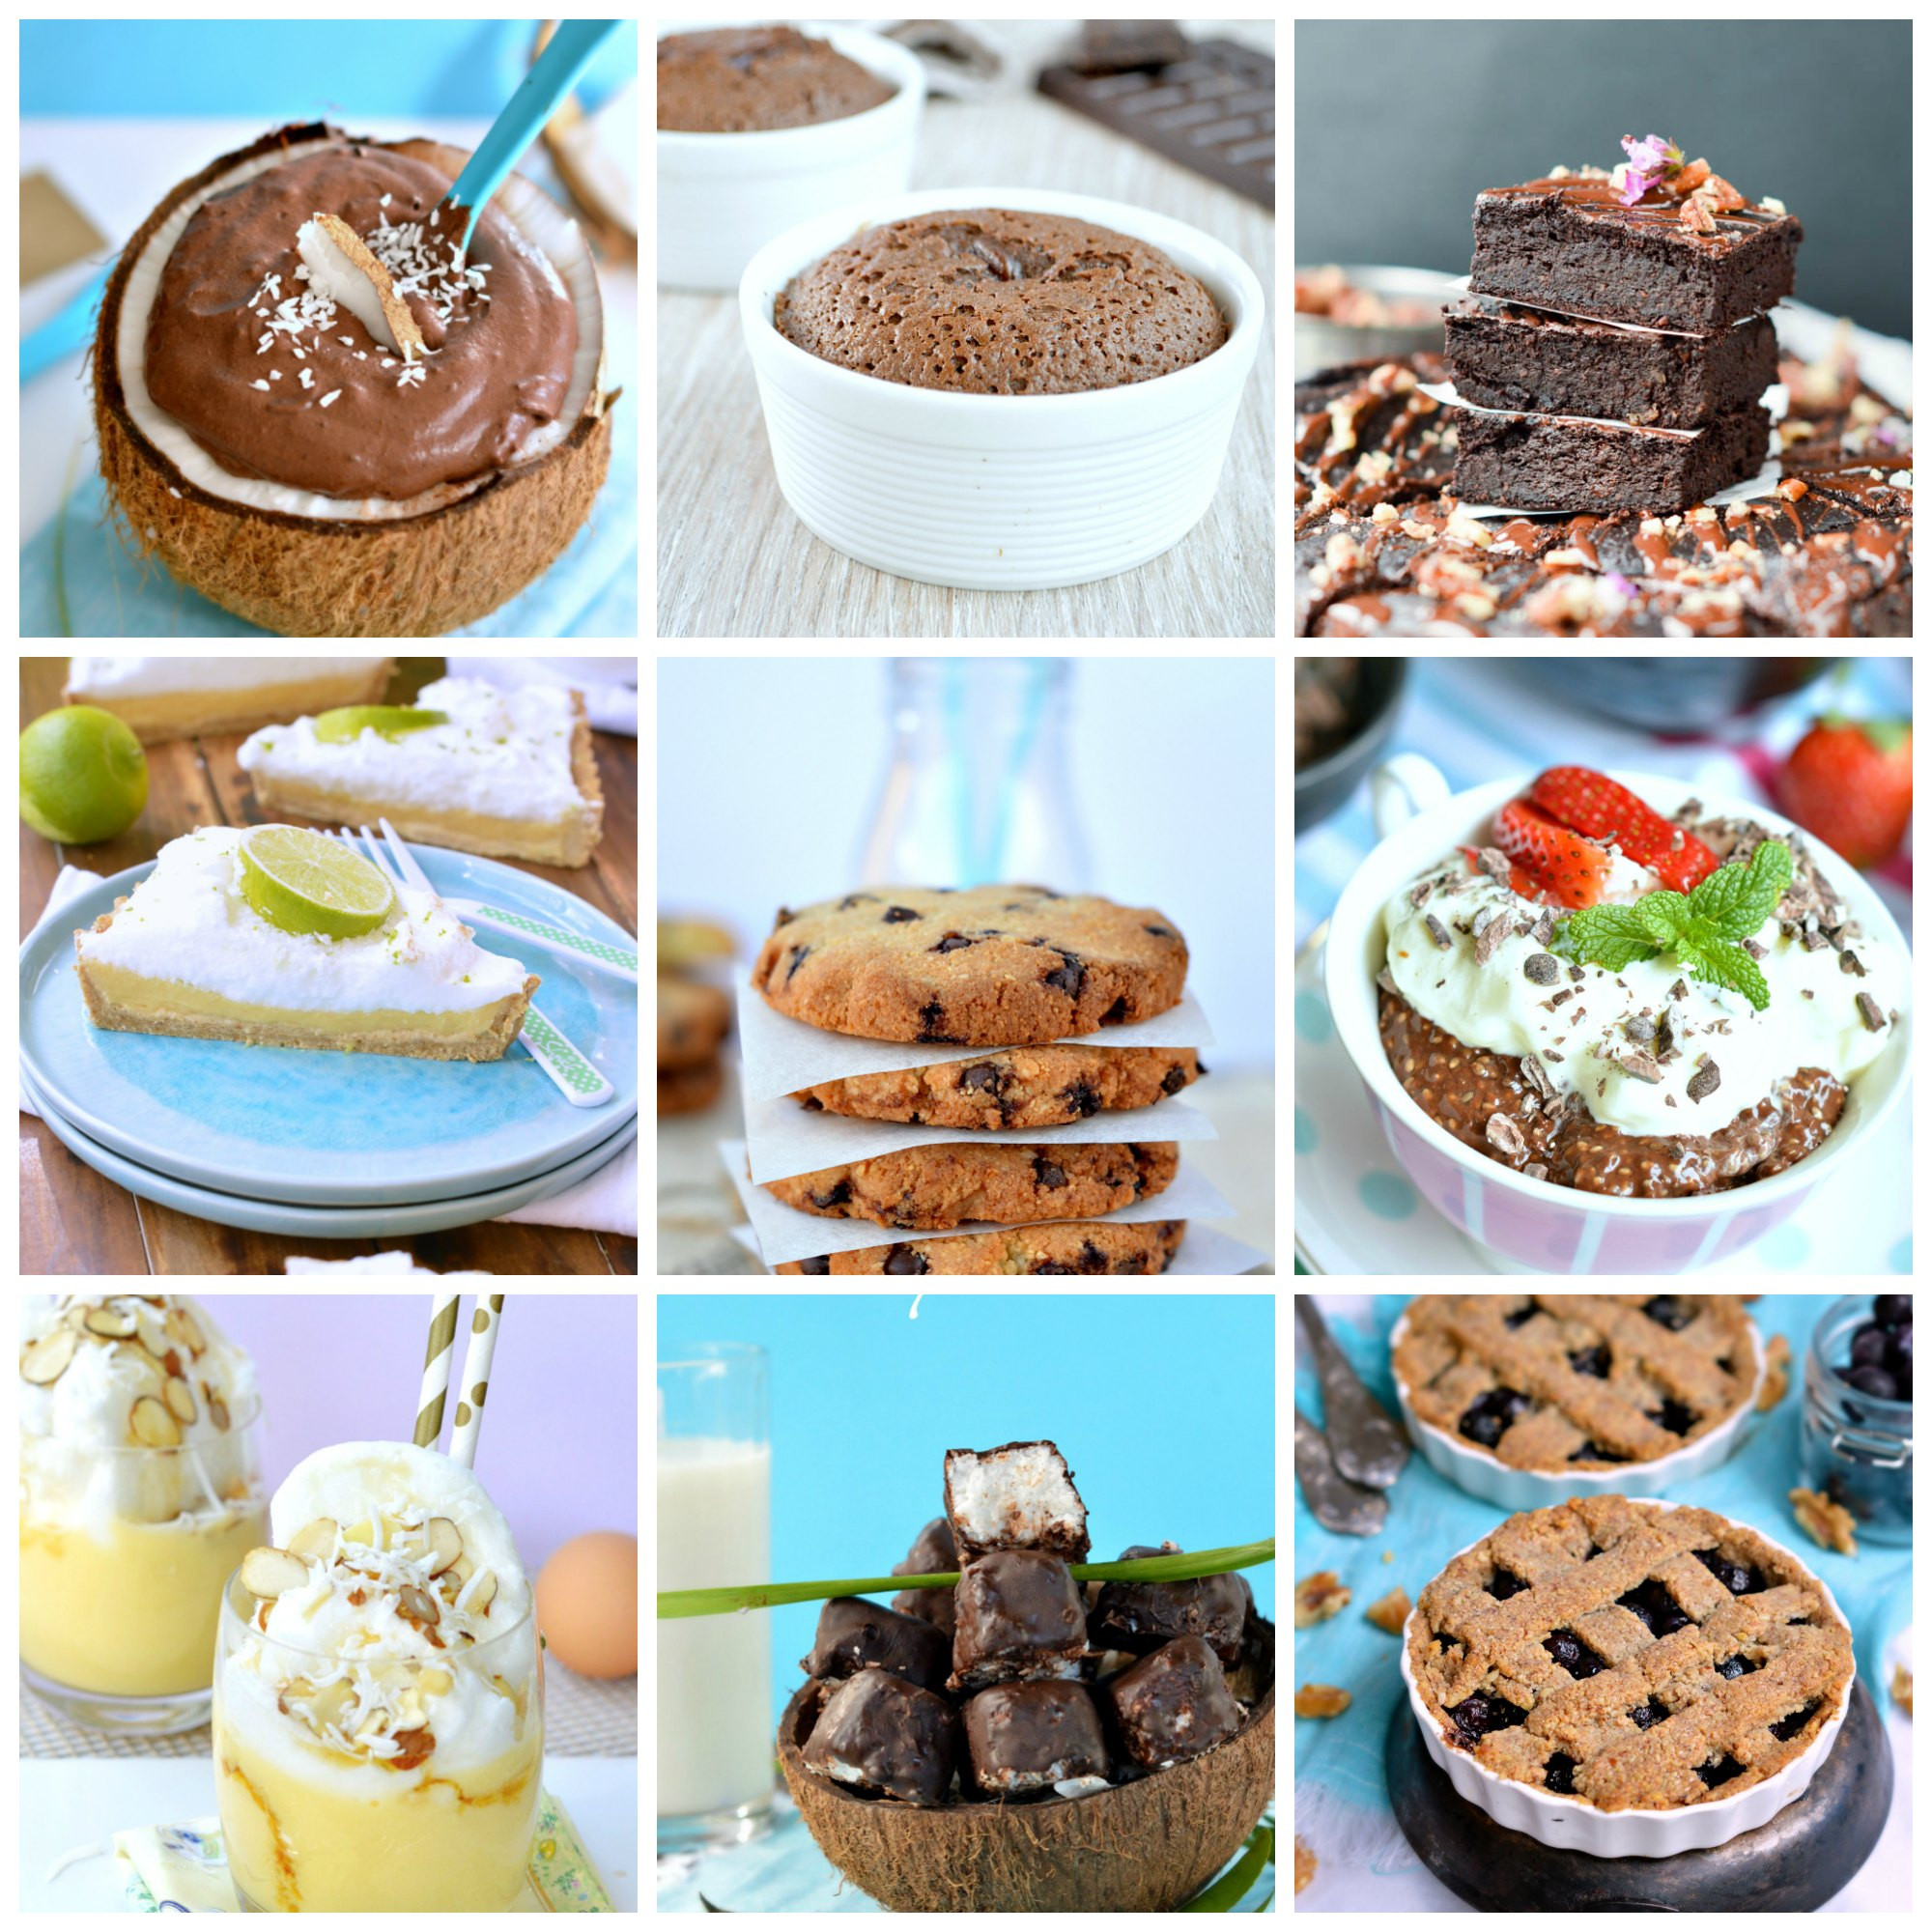 Sugar Free Diabetic Desserts  10 Sugar Free Desserts for diabetics Sweetashoney